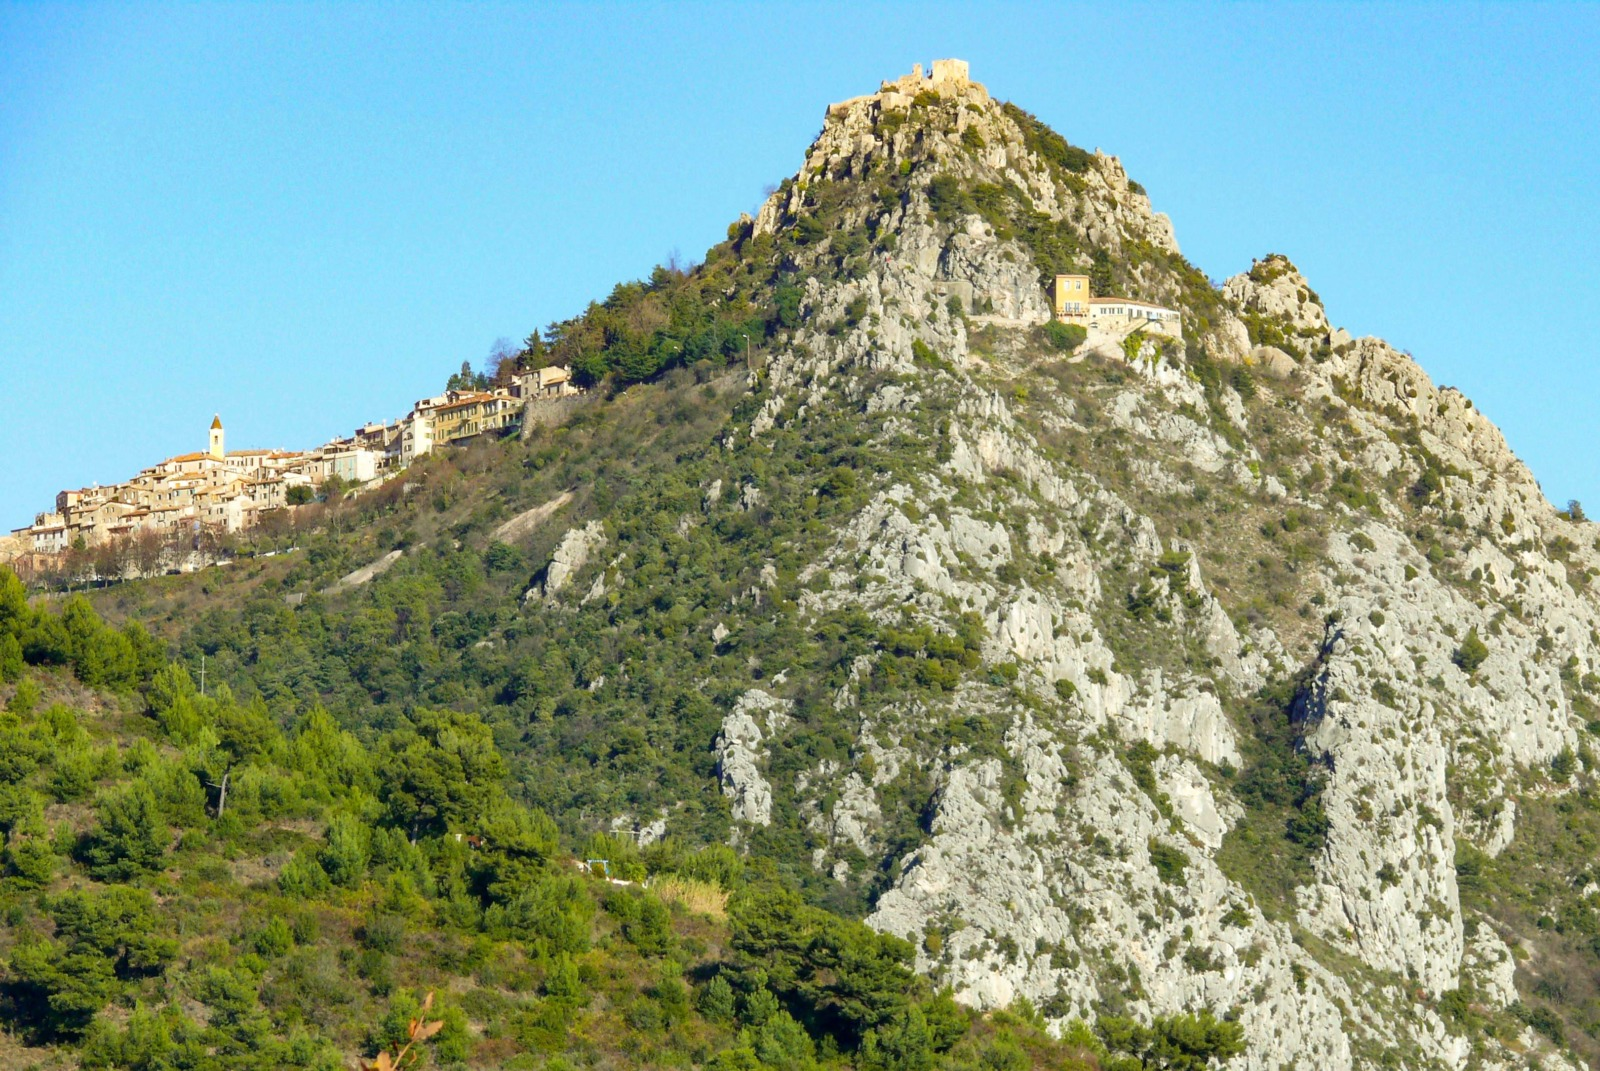 Sainte-Agnès: the village and the castle © Mossot - licence [CC BY-SA 3.0] from Wikimedia Commons